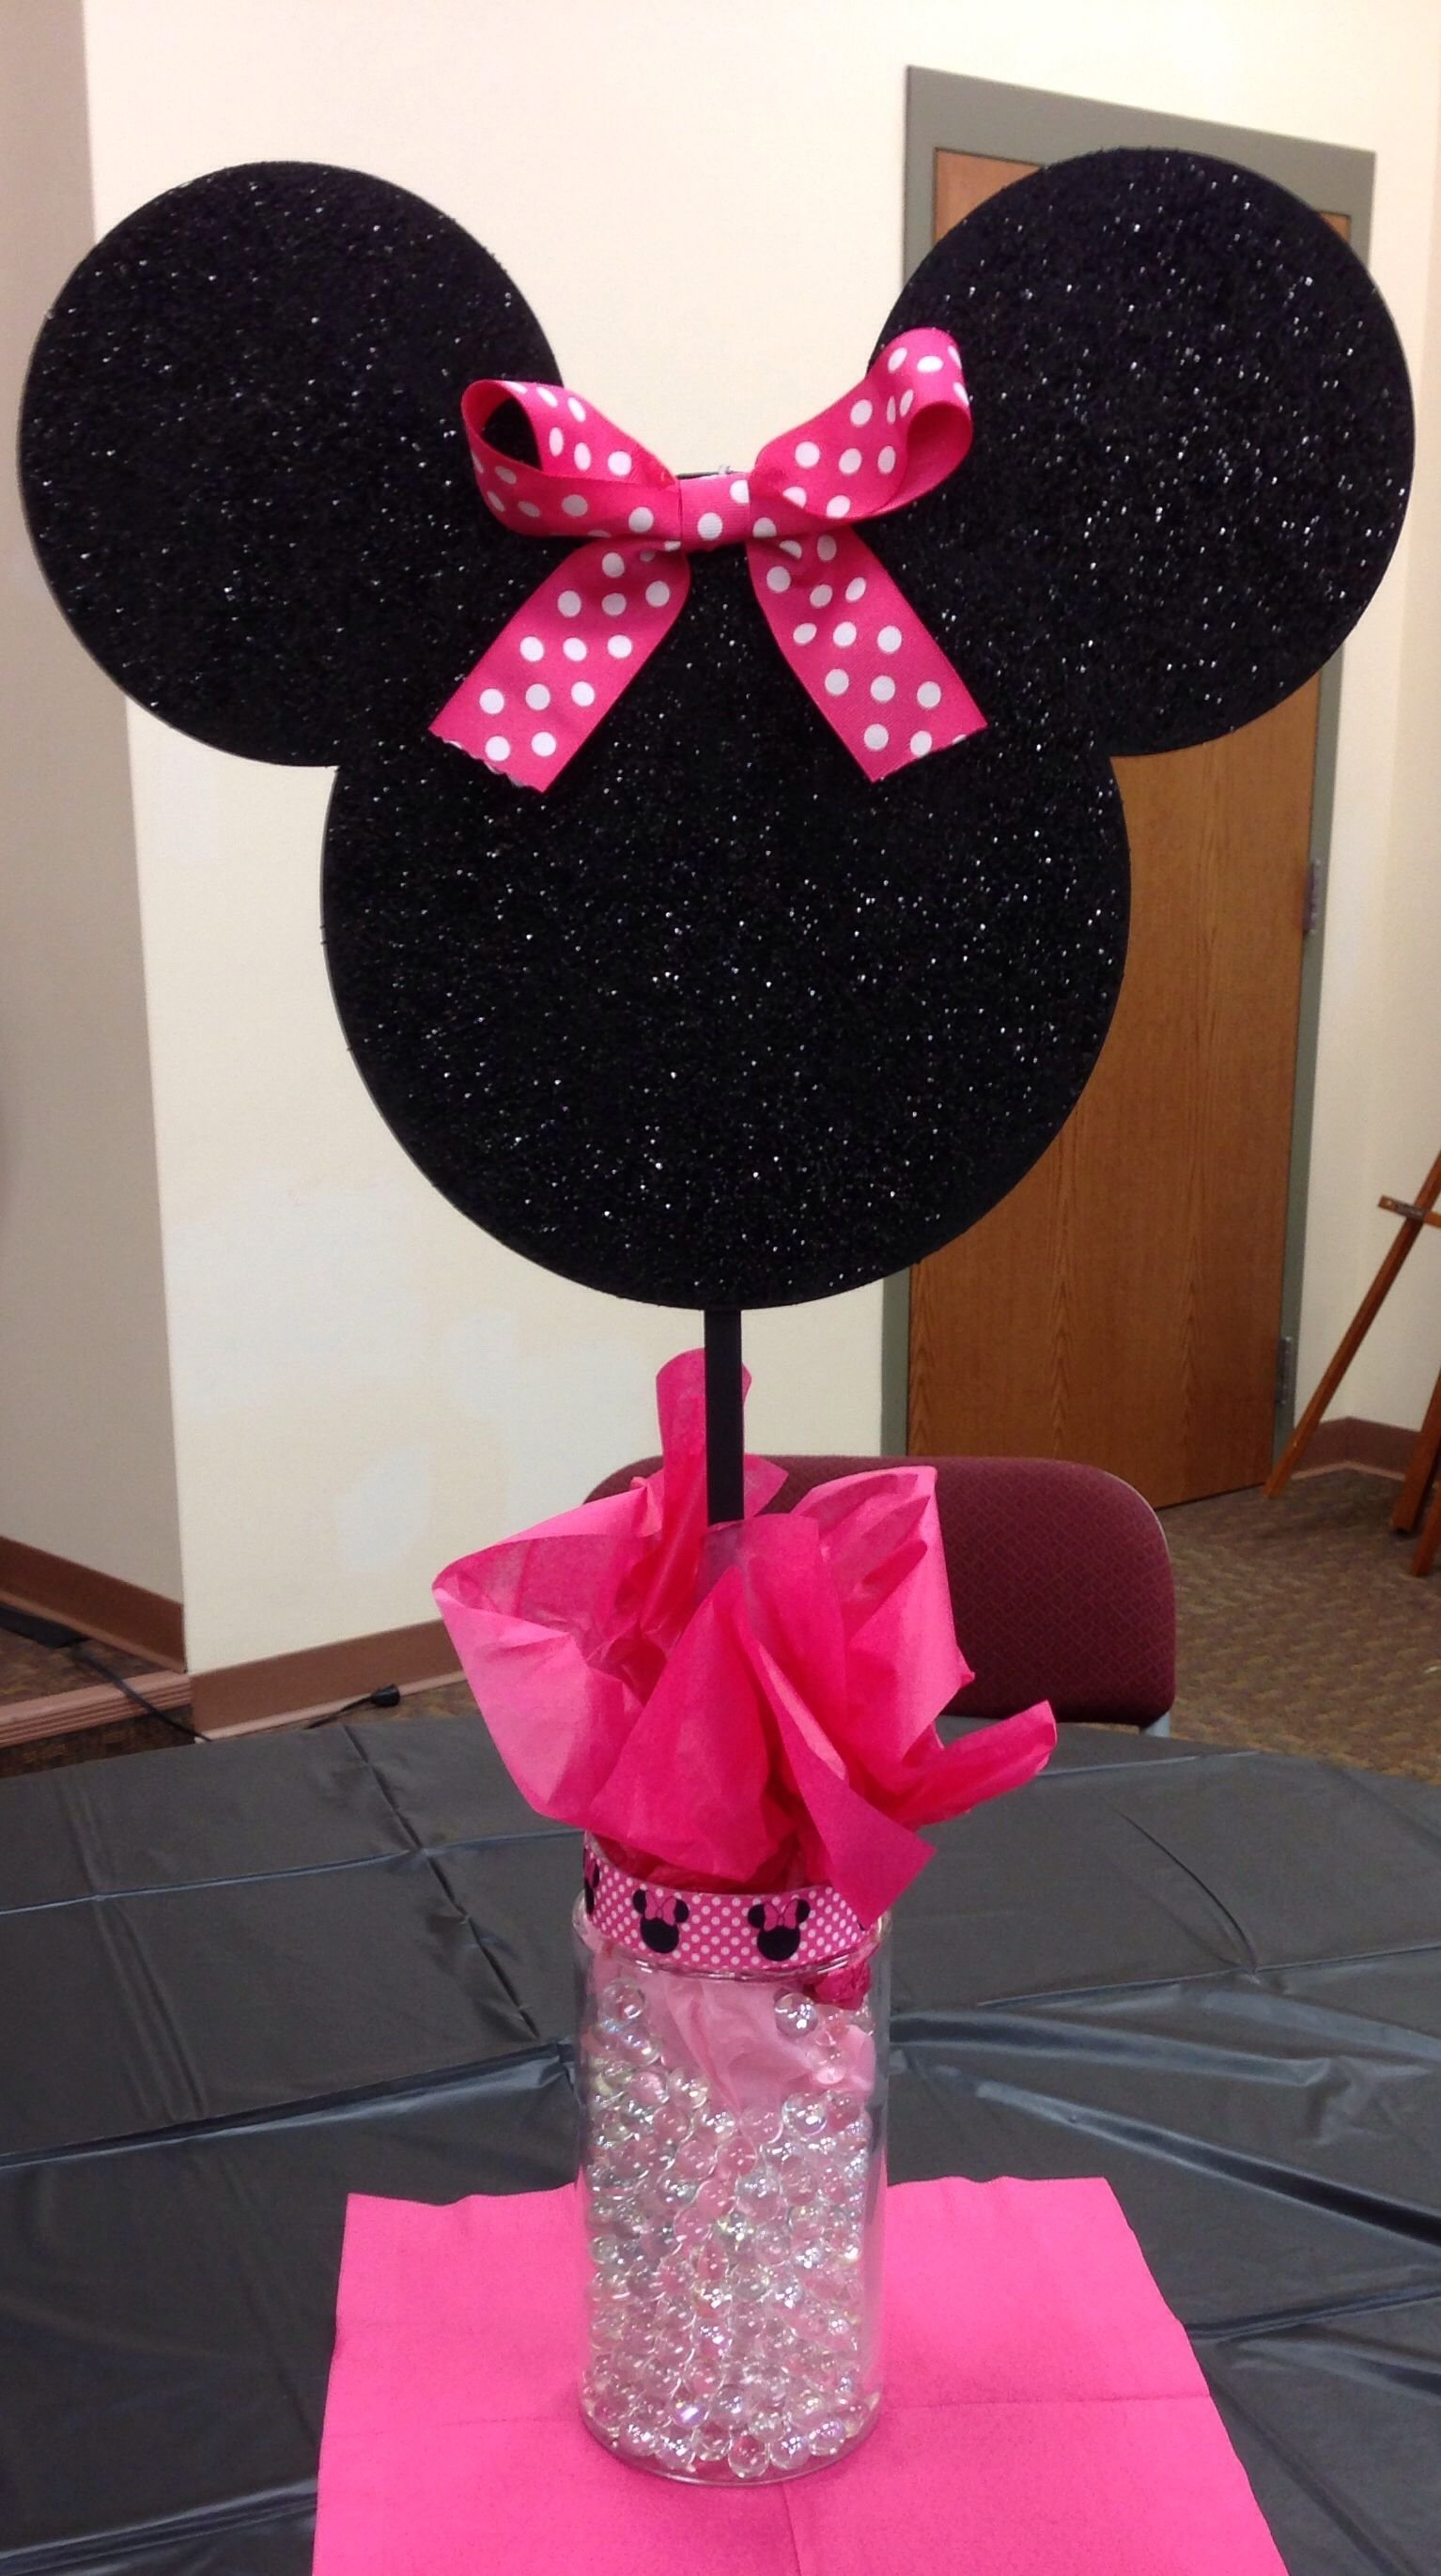 10 Beautiful Baby Minnie Mouse Party Ideas minnie mouse centerpieces first birthday decorations minnie theme 5 2020